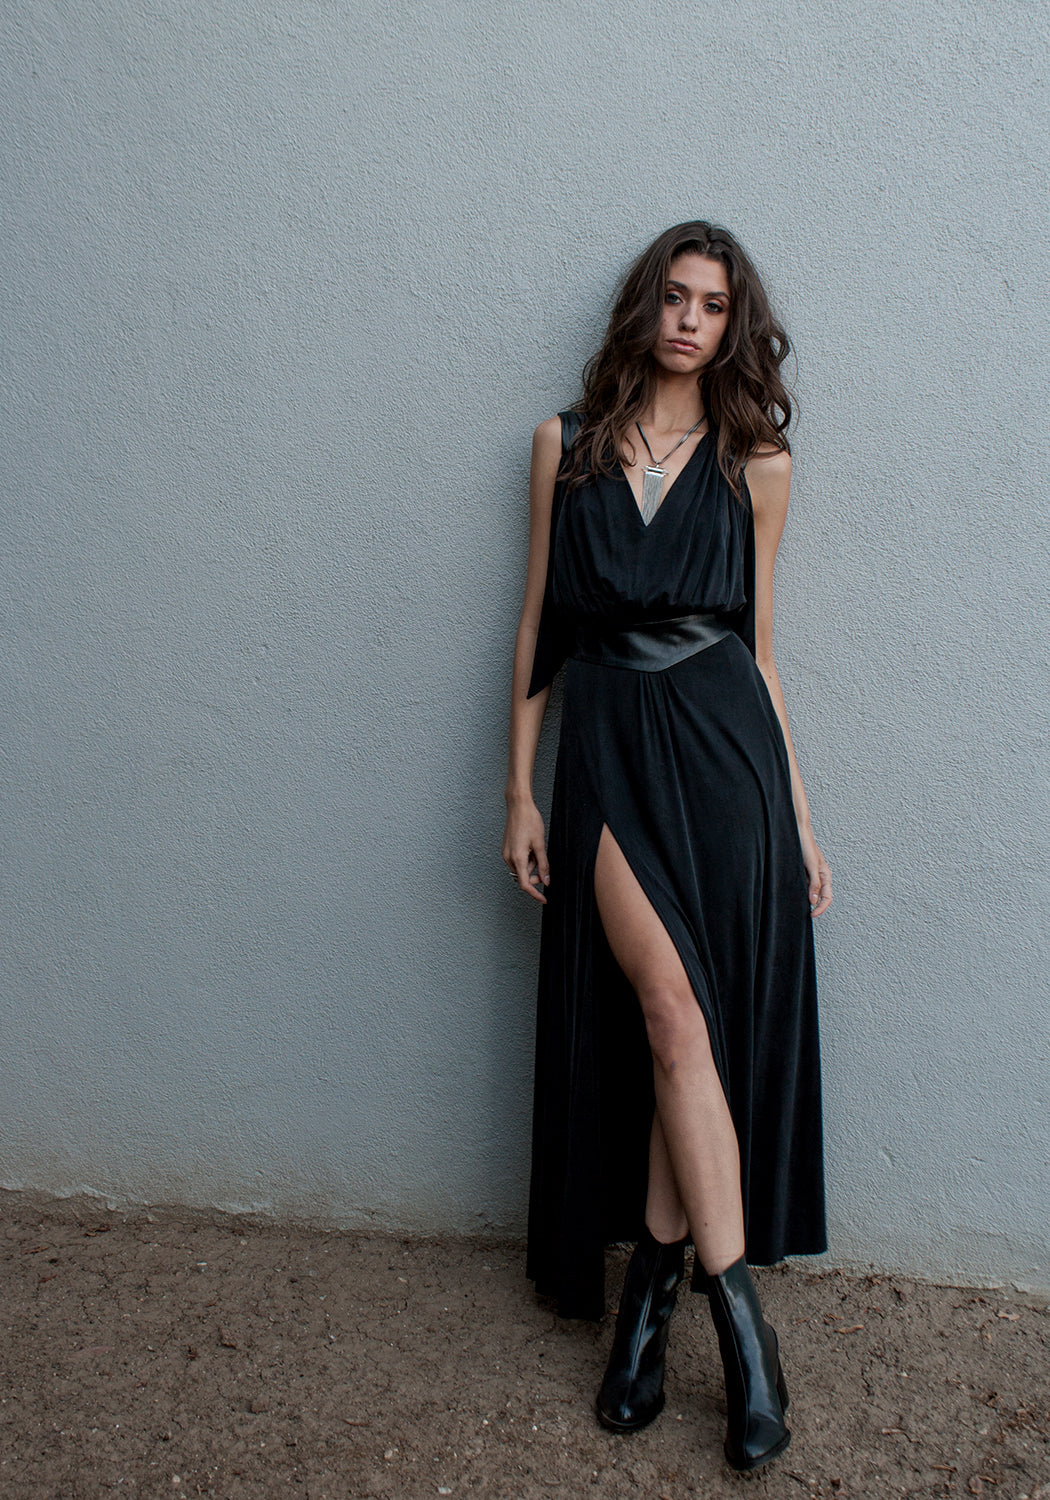 winter maxi dress in soft black color that can be dressed up and worn as a gown to black tie or other evening event or dressed down for daytime looks.